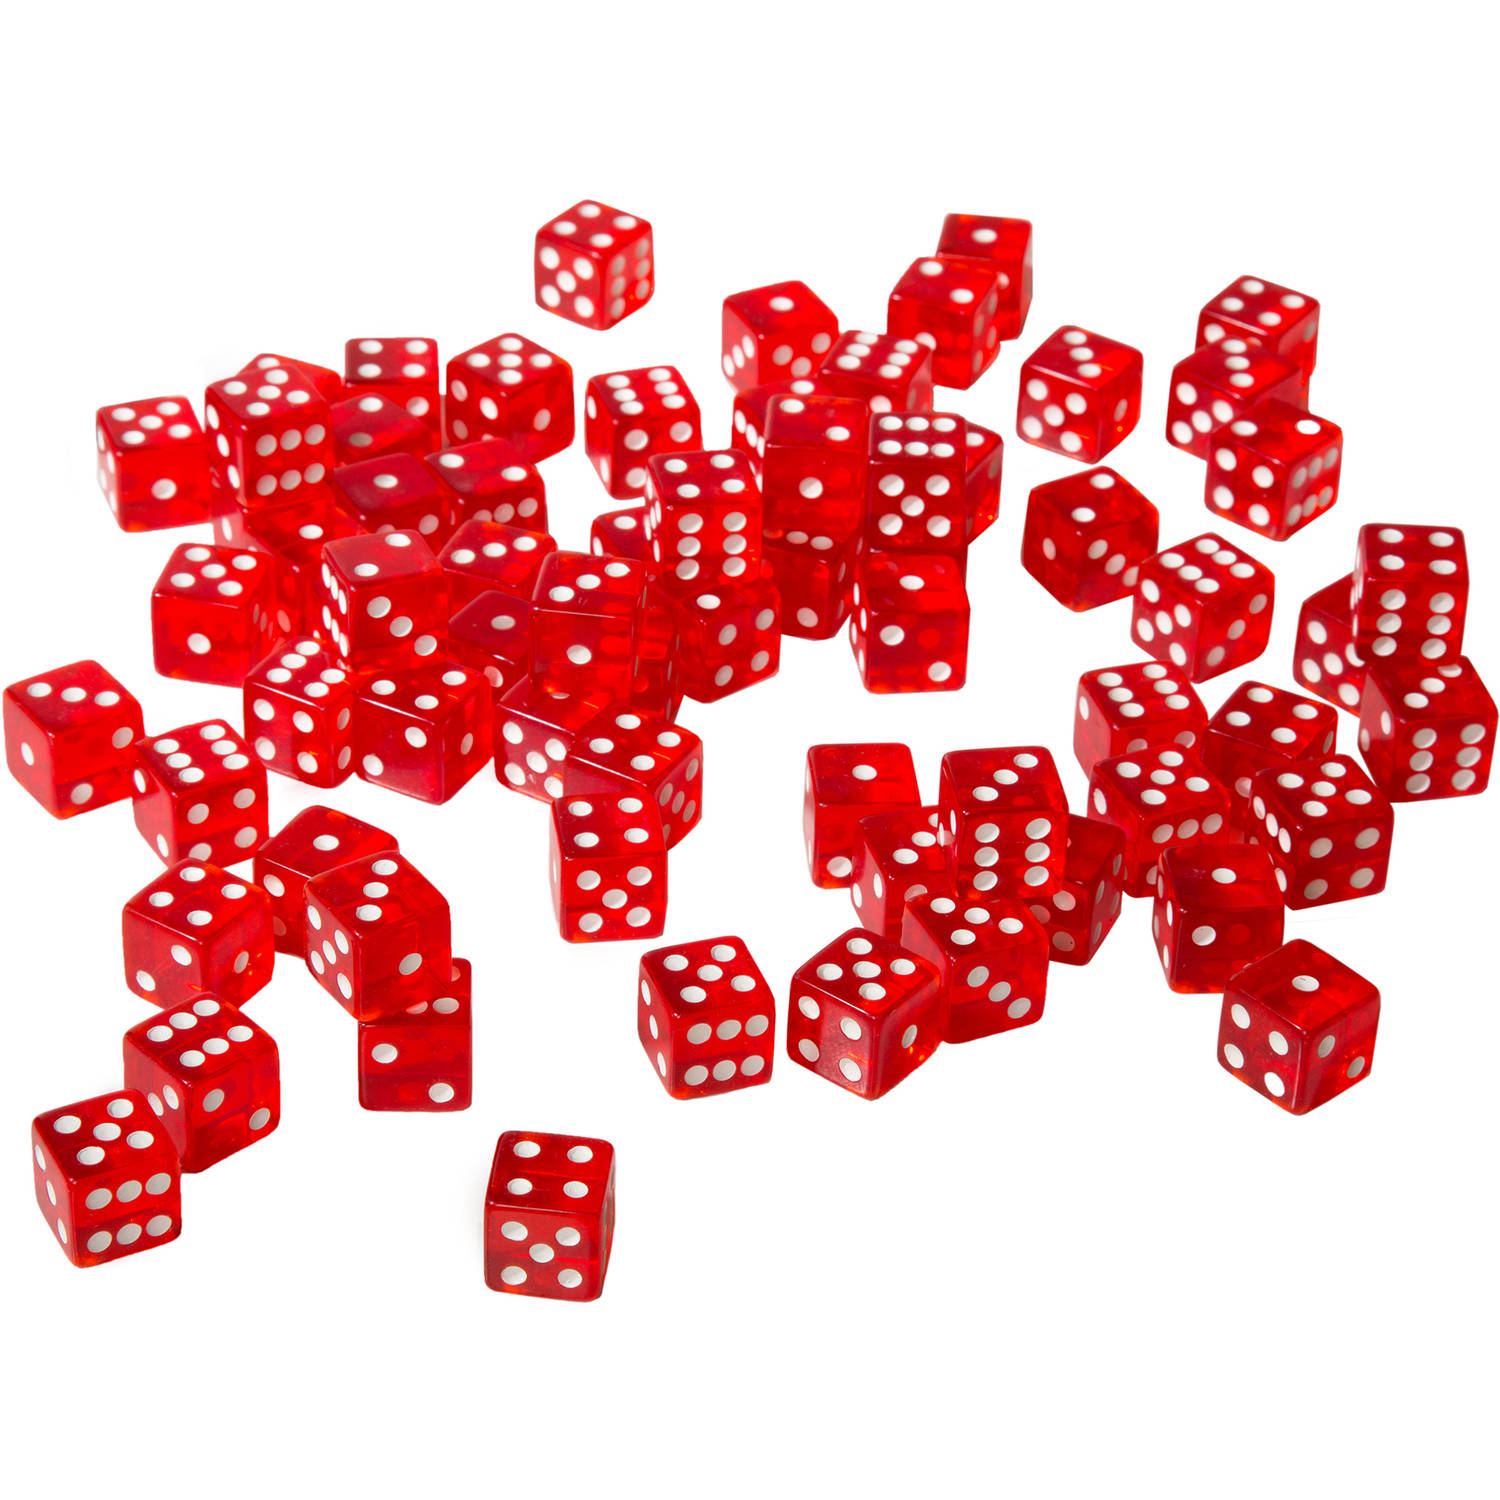 75 Red 16mm Dice